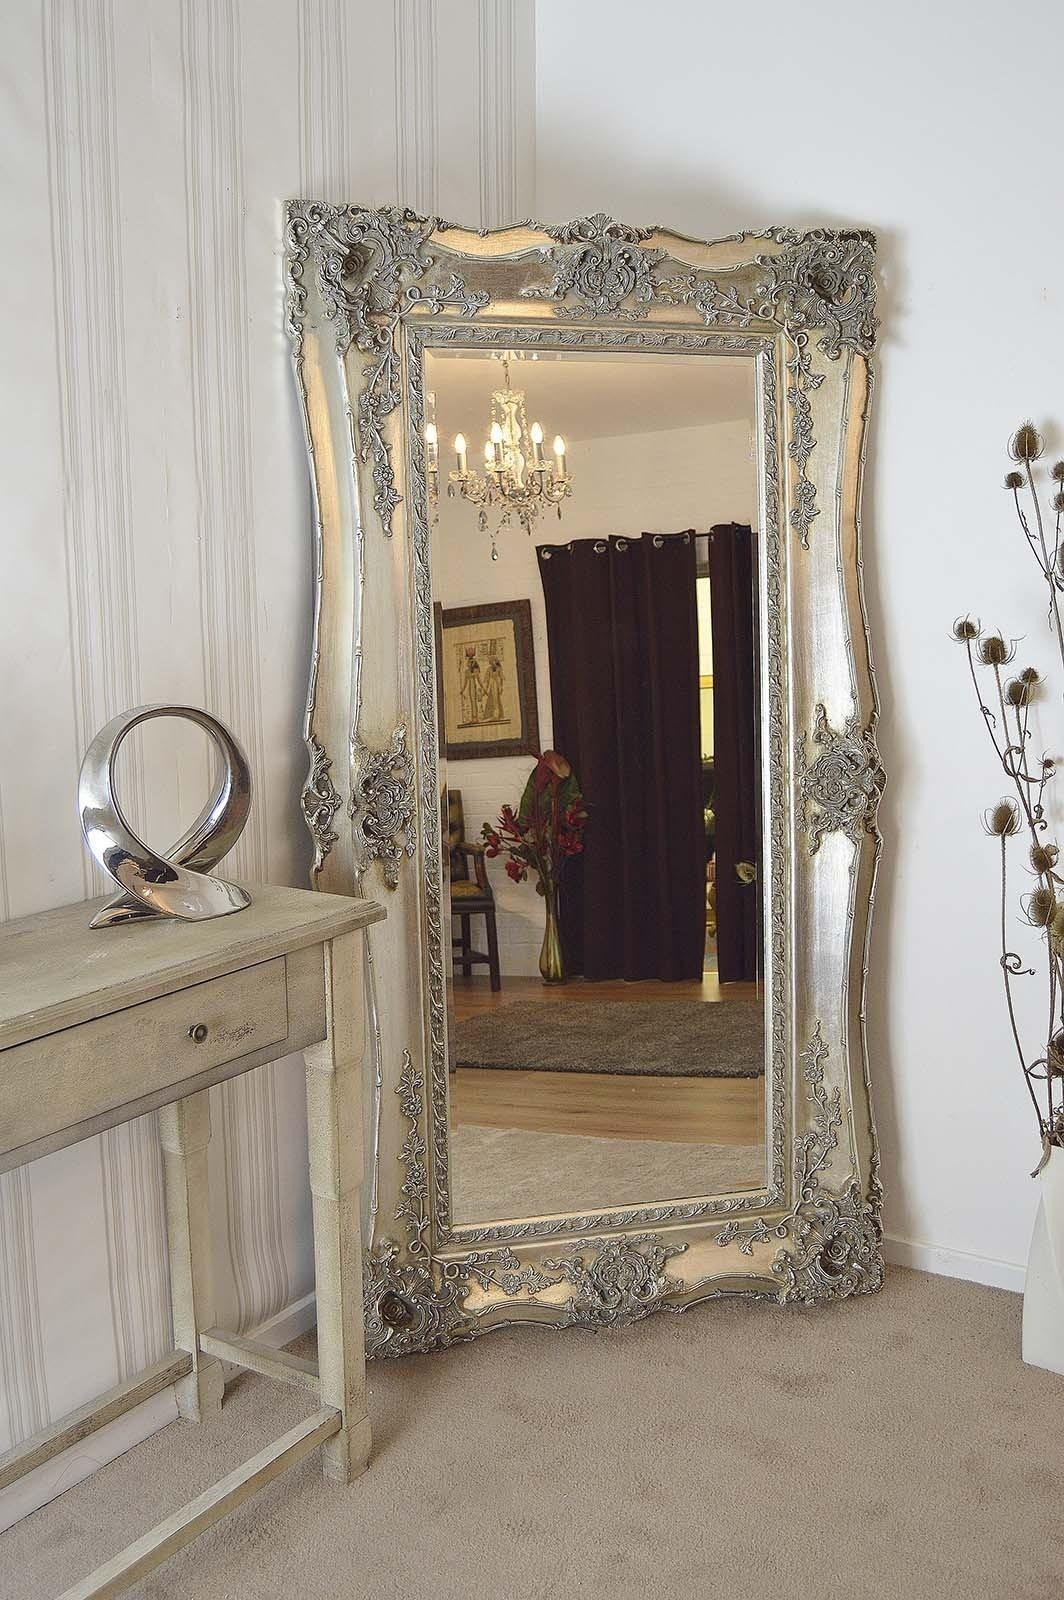 Homeware: Bedroom Full Length Mirrors | Floor Length Mirrors Intended For Full Length Large Mirror (Image 15 of 20)